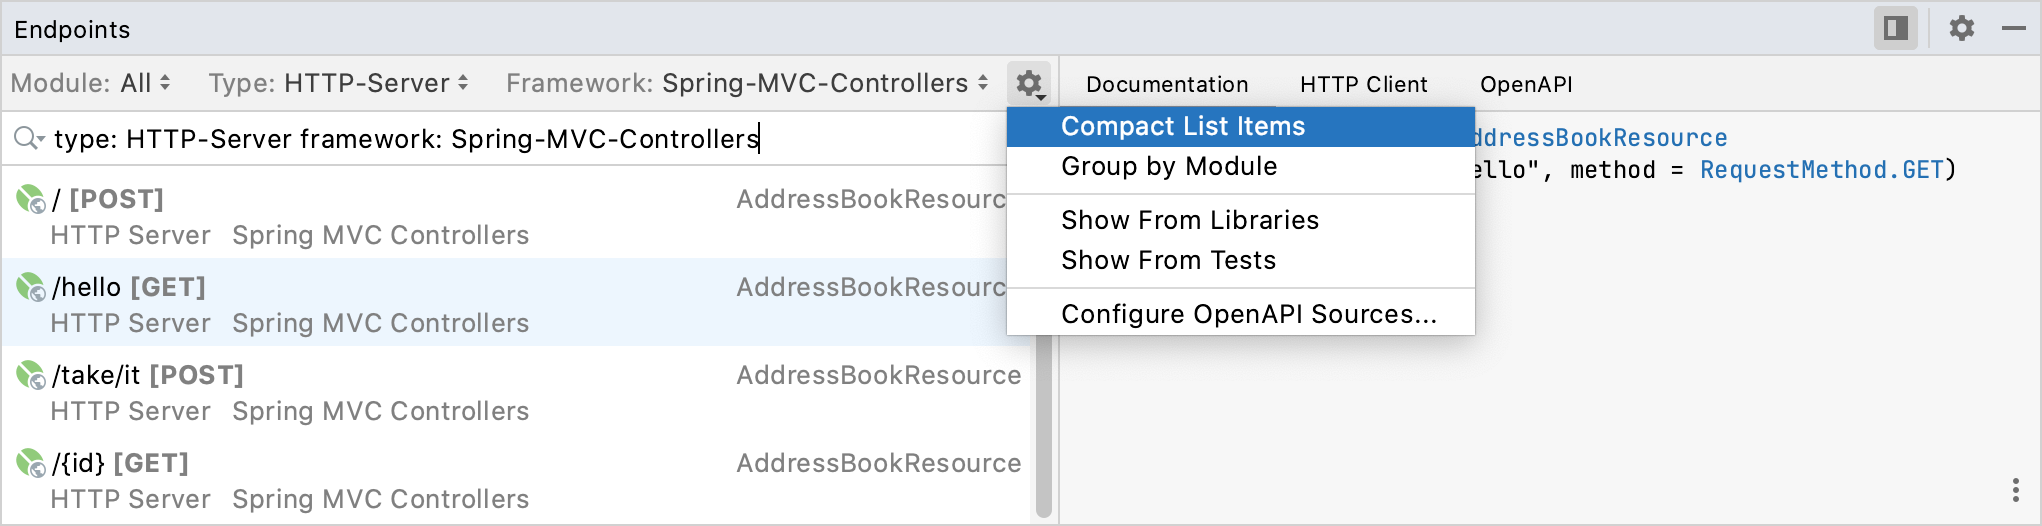 Options of the Endpoints tool window